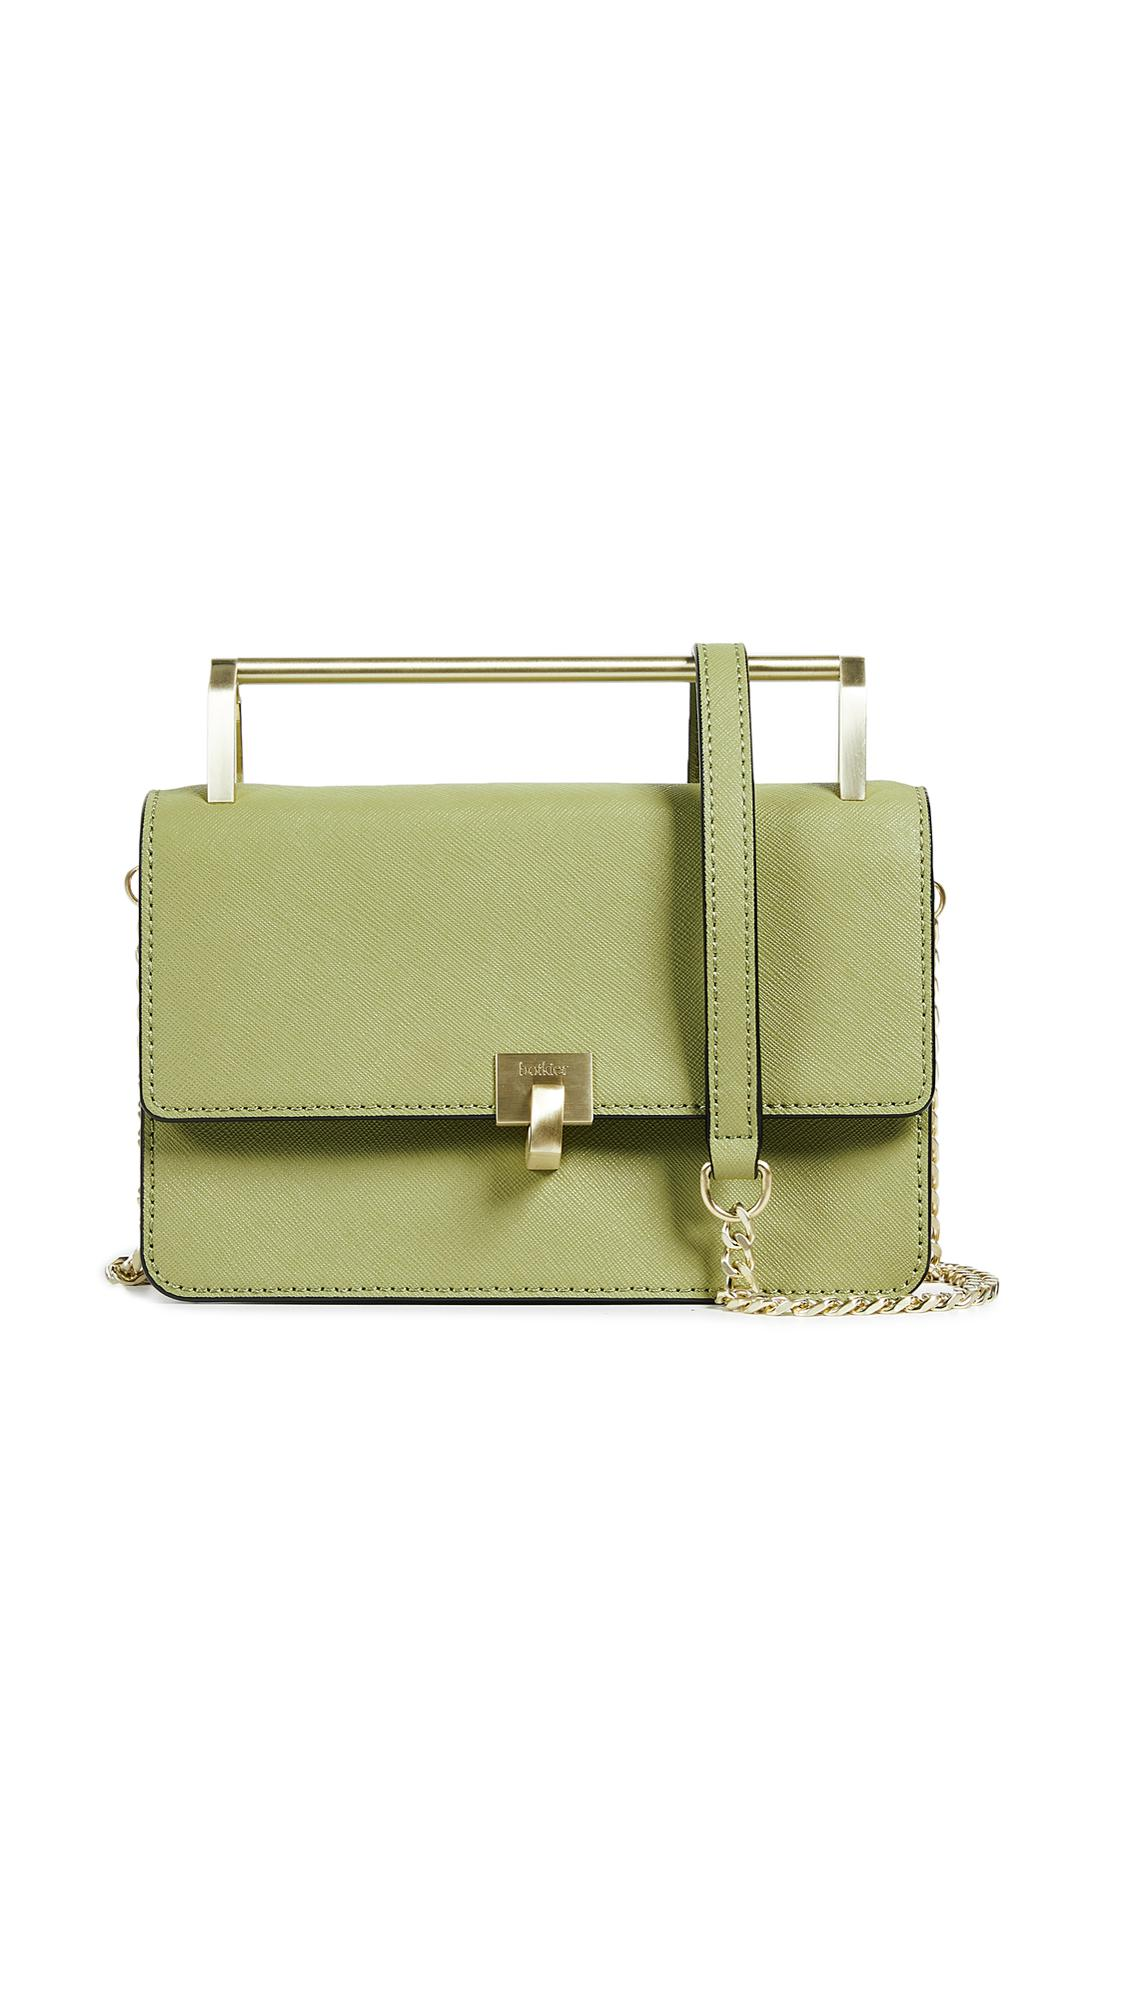 Botkier Leather Lennox Small Cross Body Bag in Sage (Green)